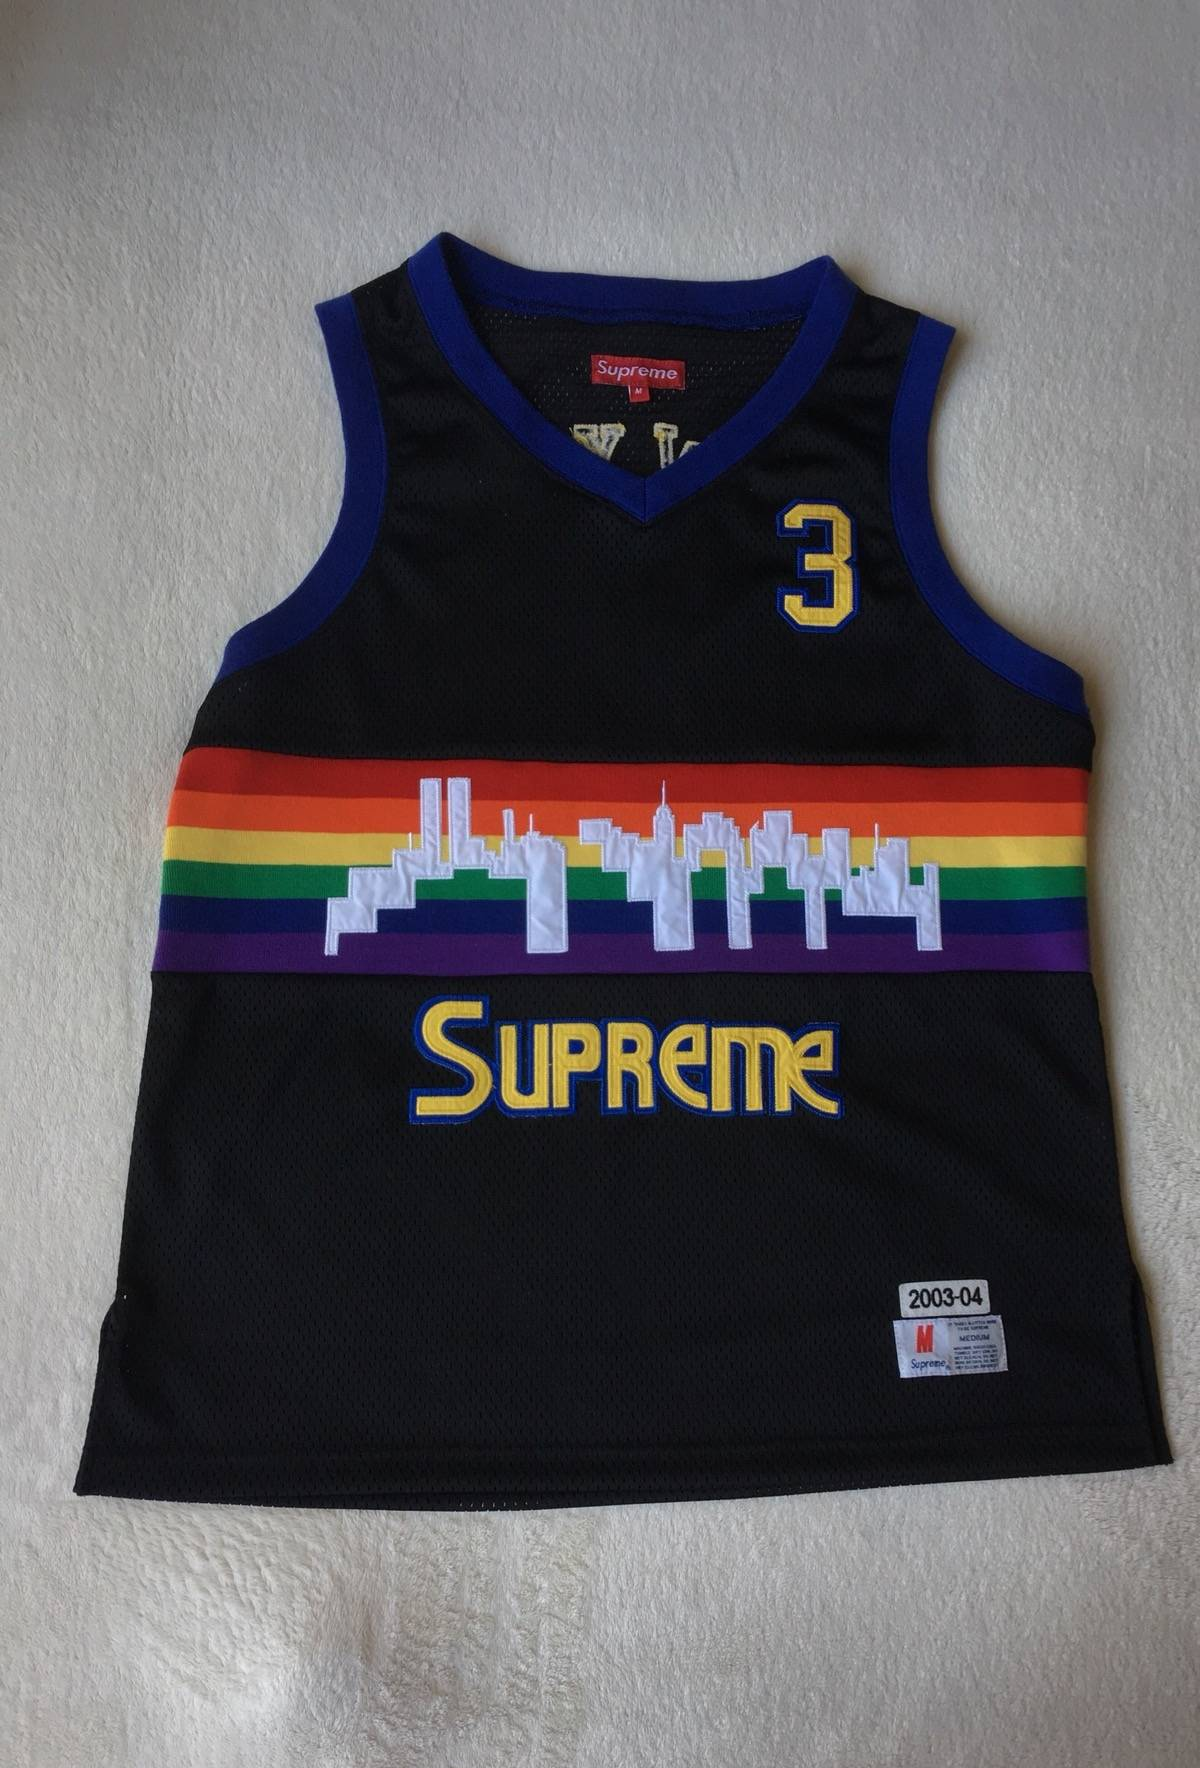 Supreme Supreme Denver Nuggets Skyline Jersey Size m - Tank Tops    Sleeveless for Sale - Grailed 57ba4a8c8